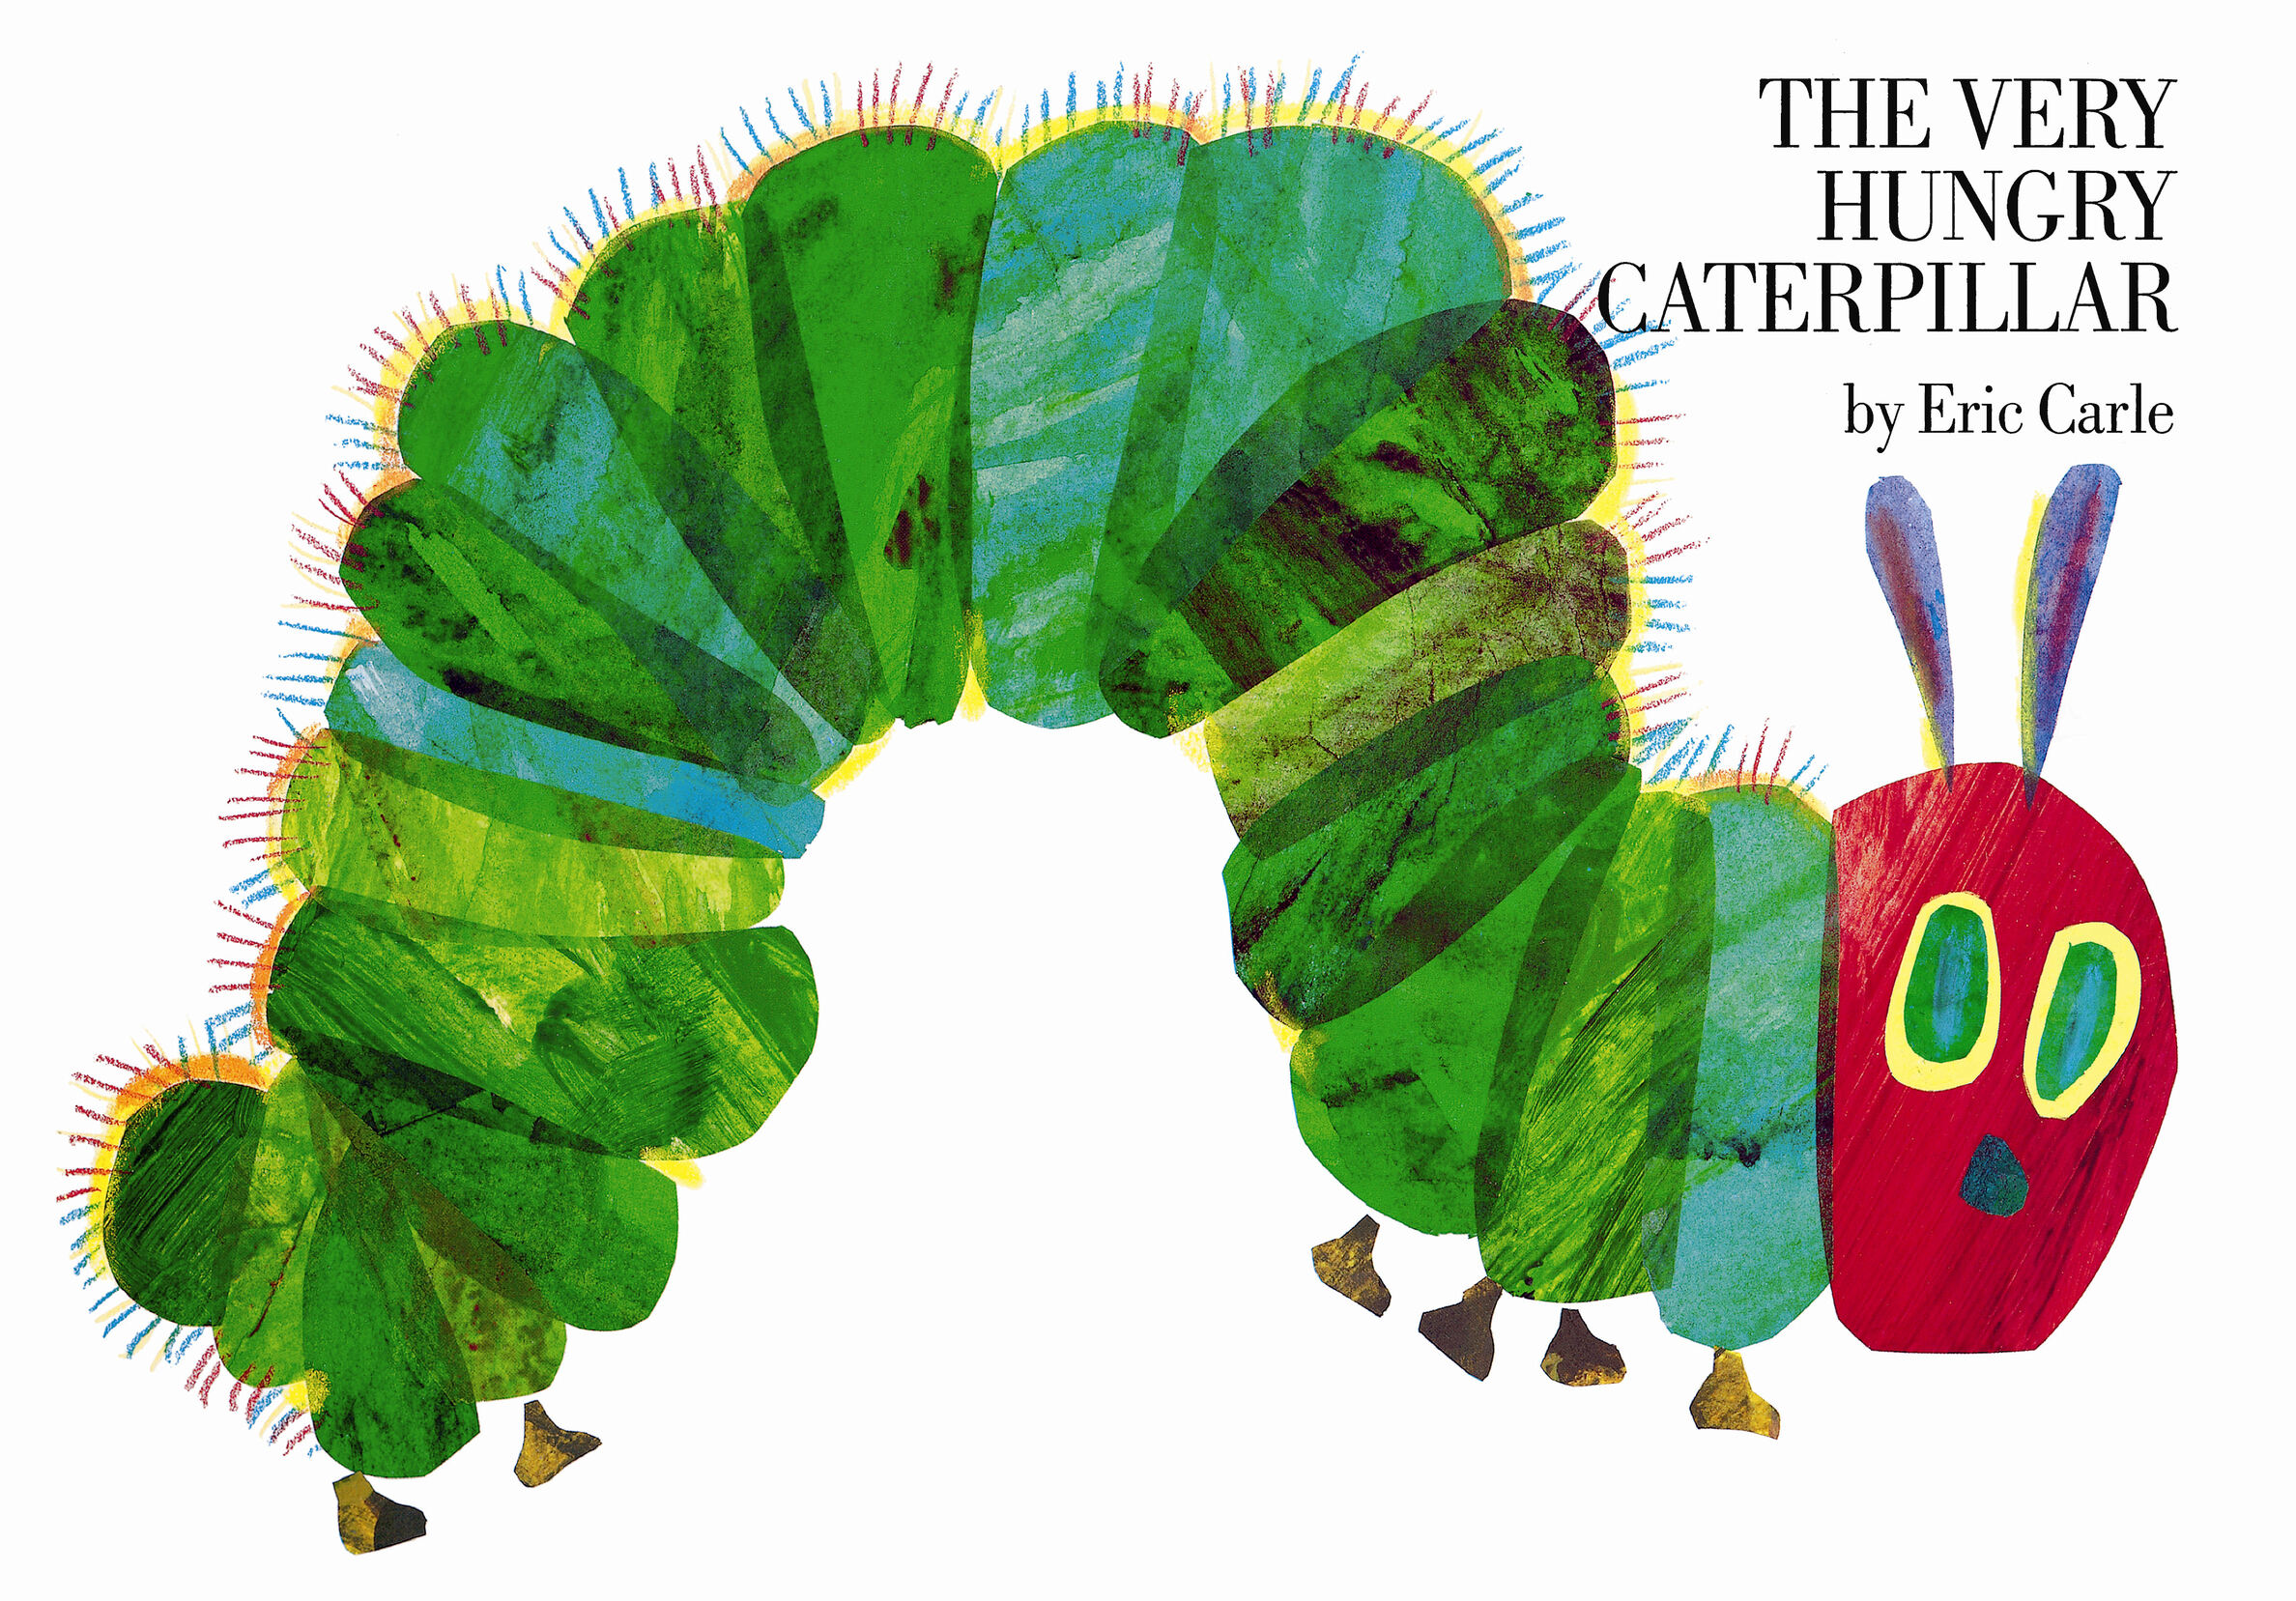 ... Very Hungry Caterpillar Story Printable The very hungry caterpillar